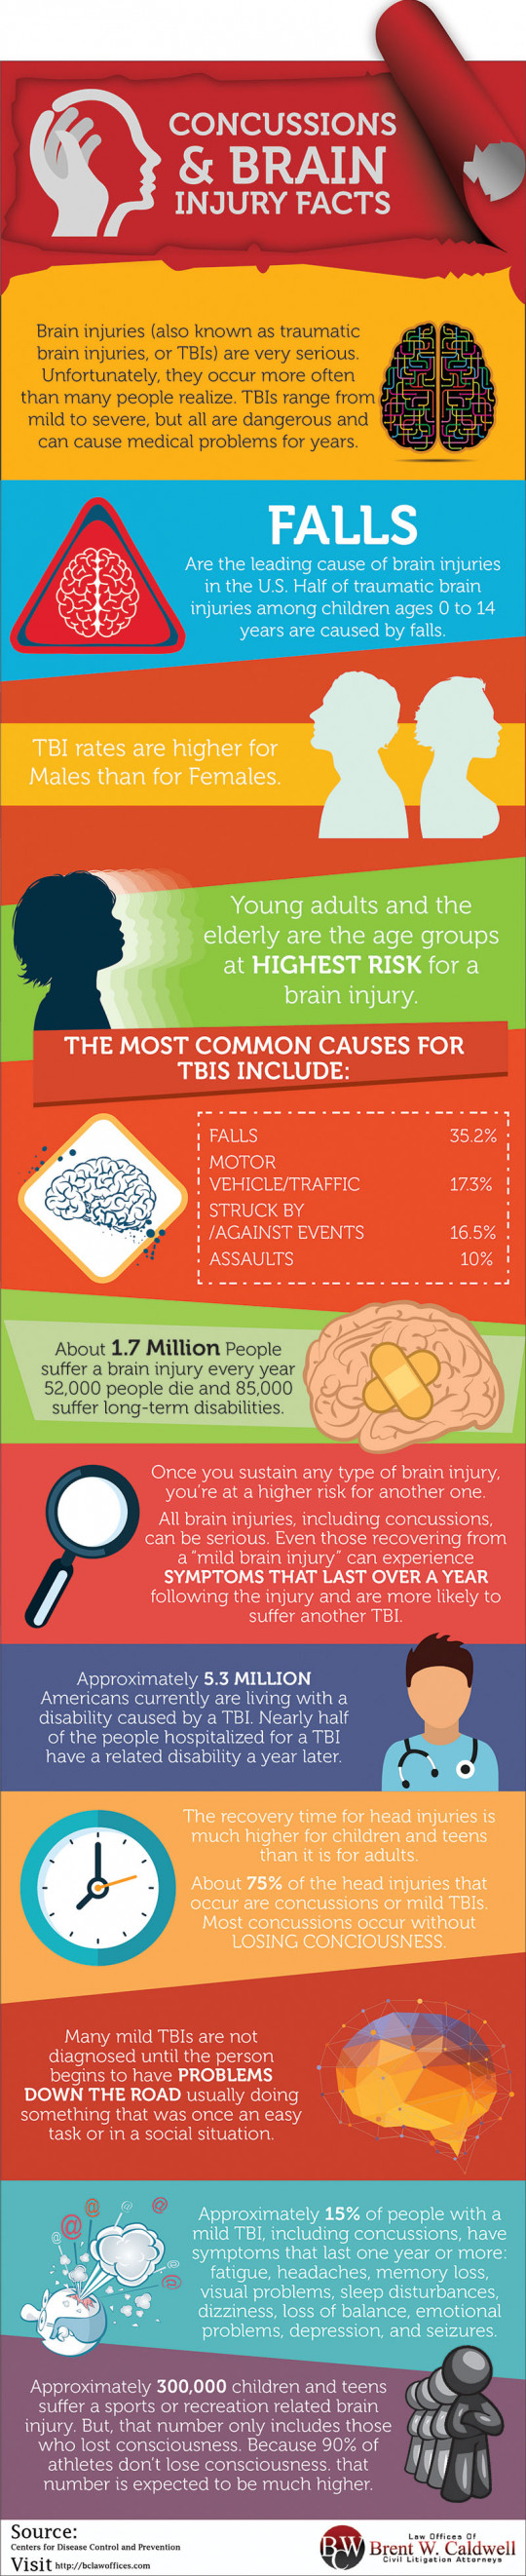 Concussions & Brain Injury Facts